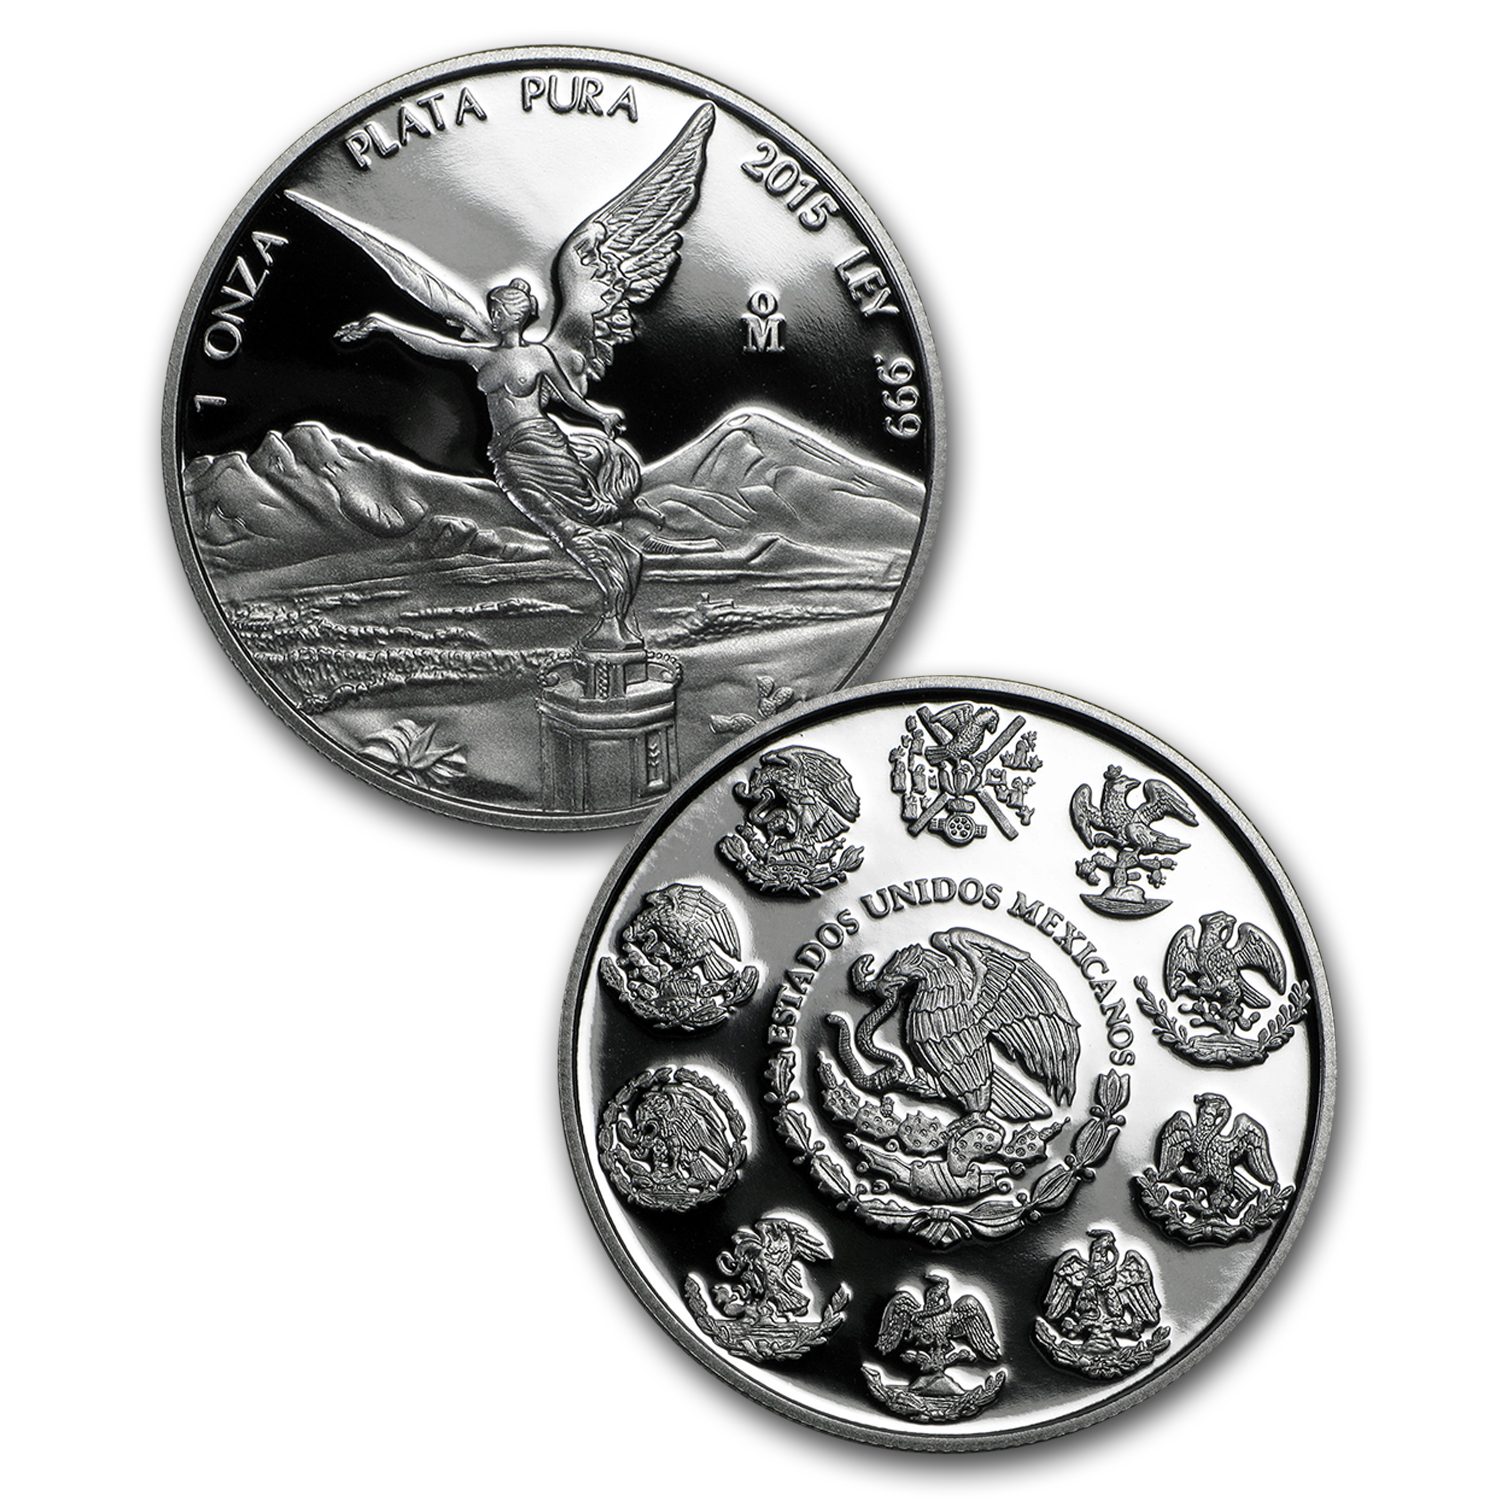 2015 Mexico 2-Coin Silver Libertad Proof/Reverse Proof Set